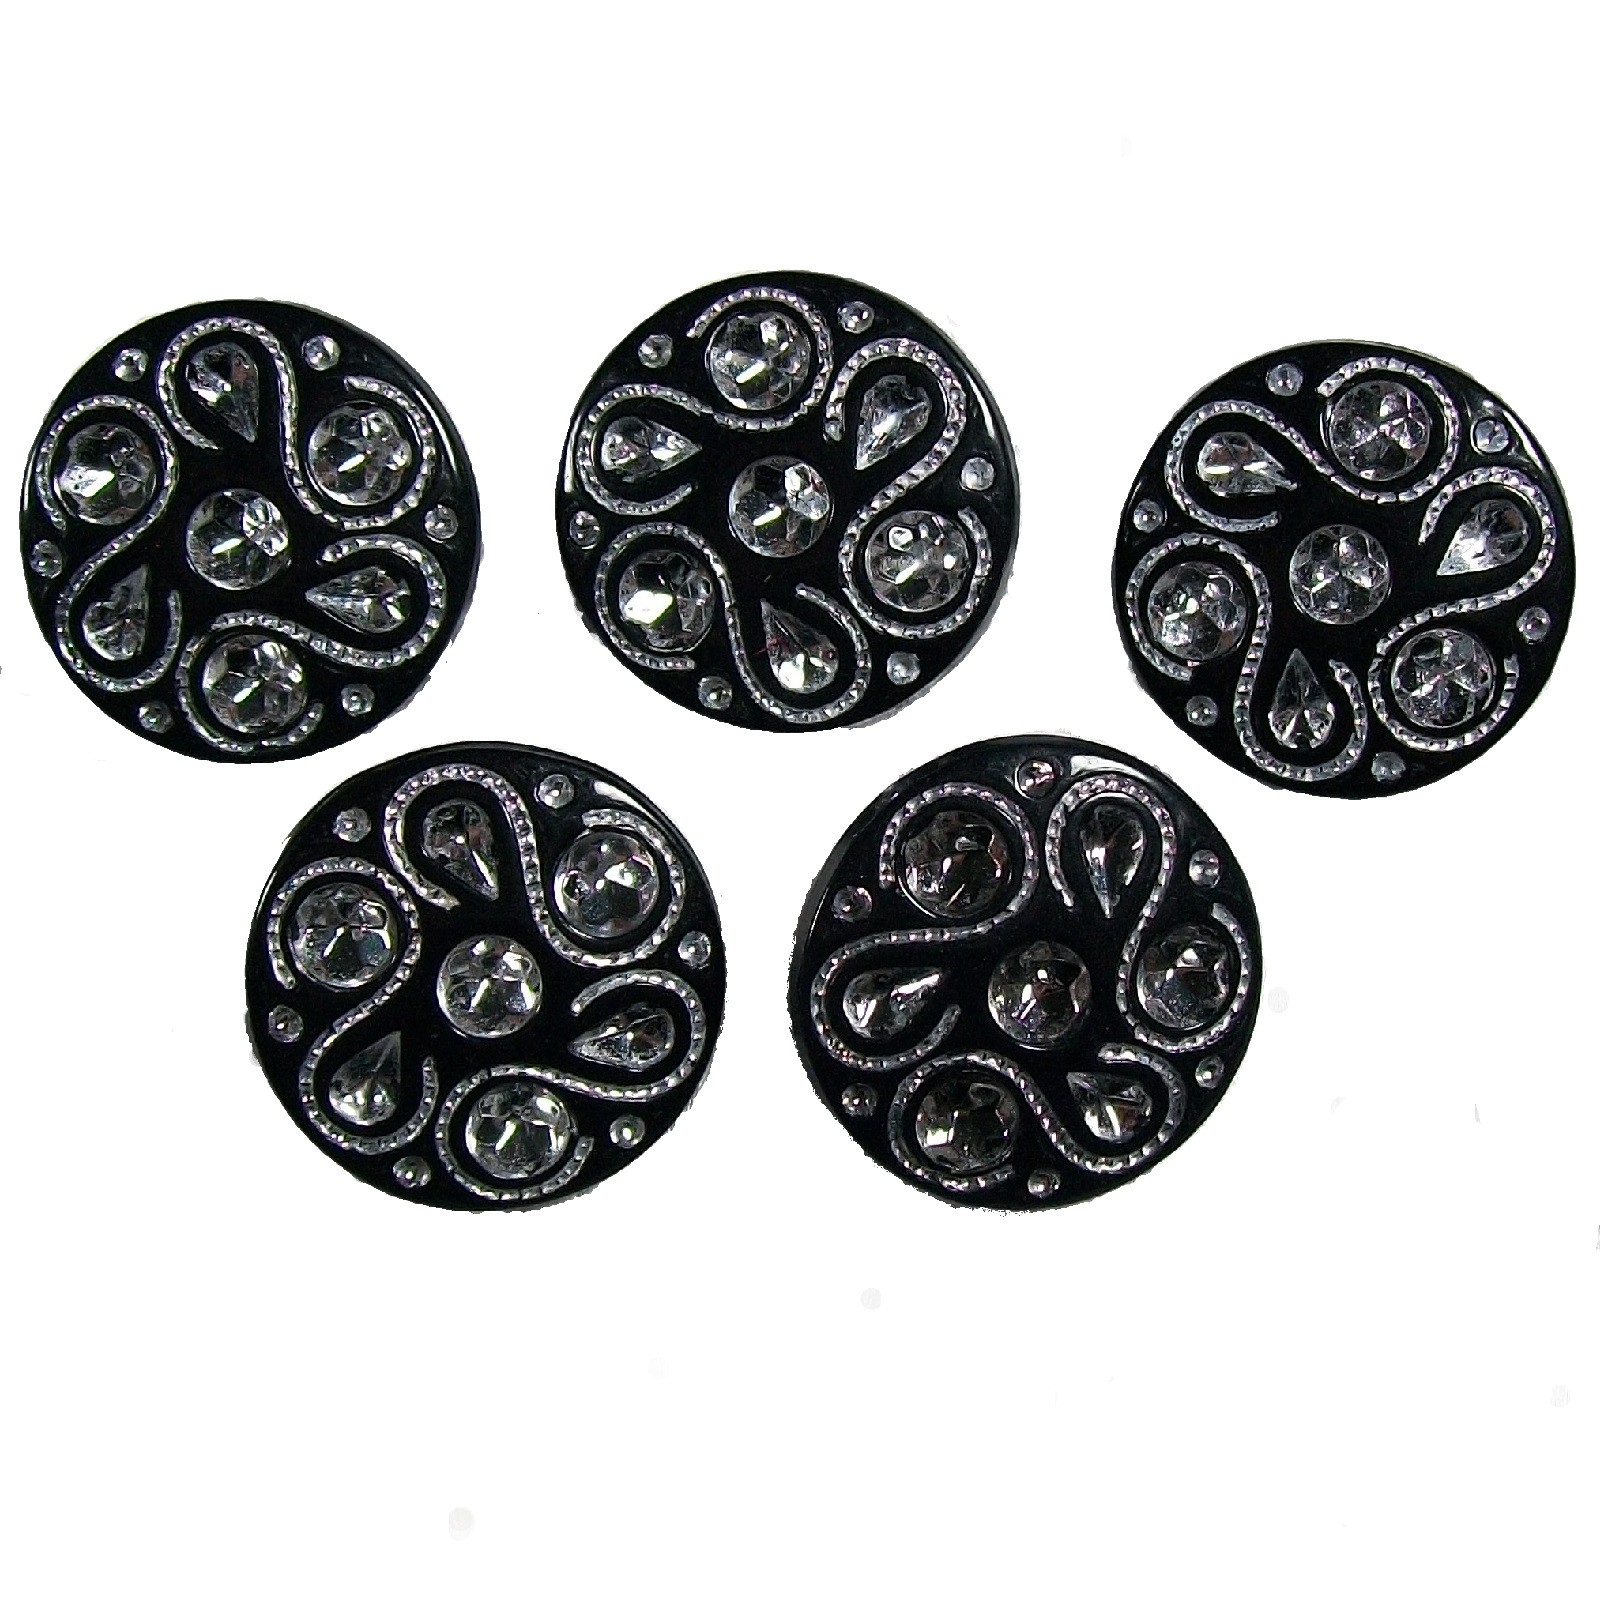 Black Diamante Art Deco Style Buttons 20mm Round Pack of 5